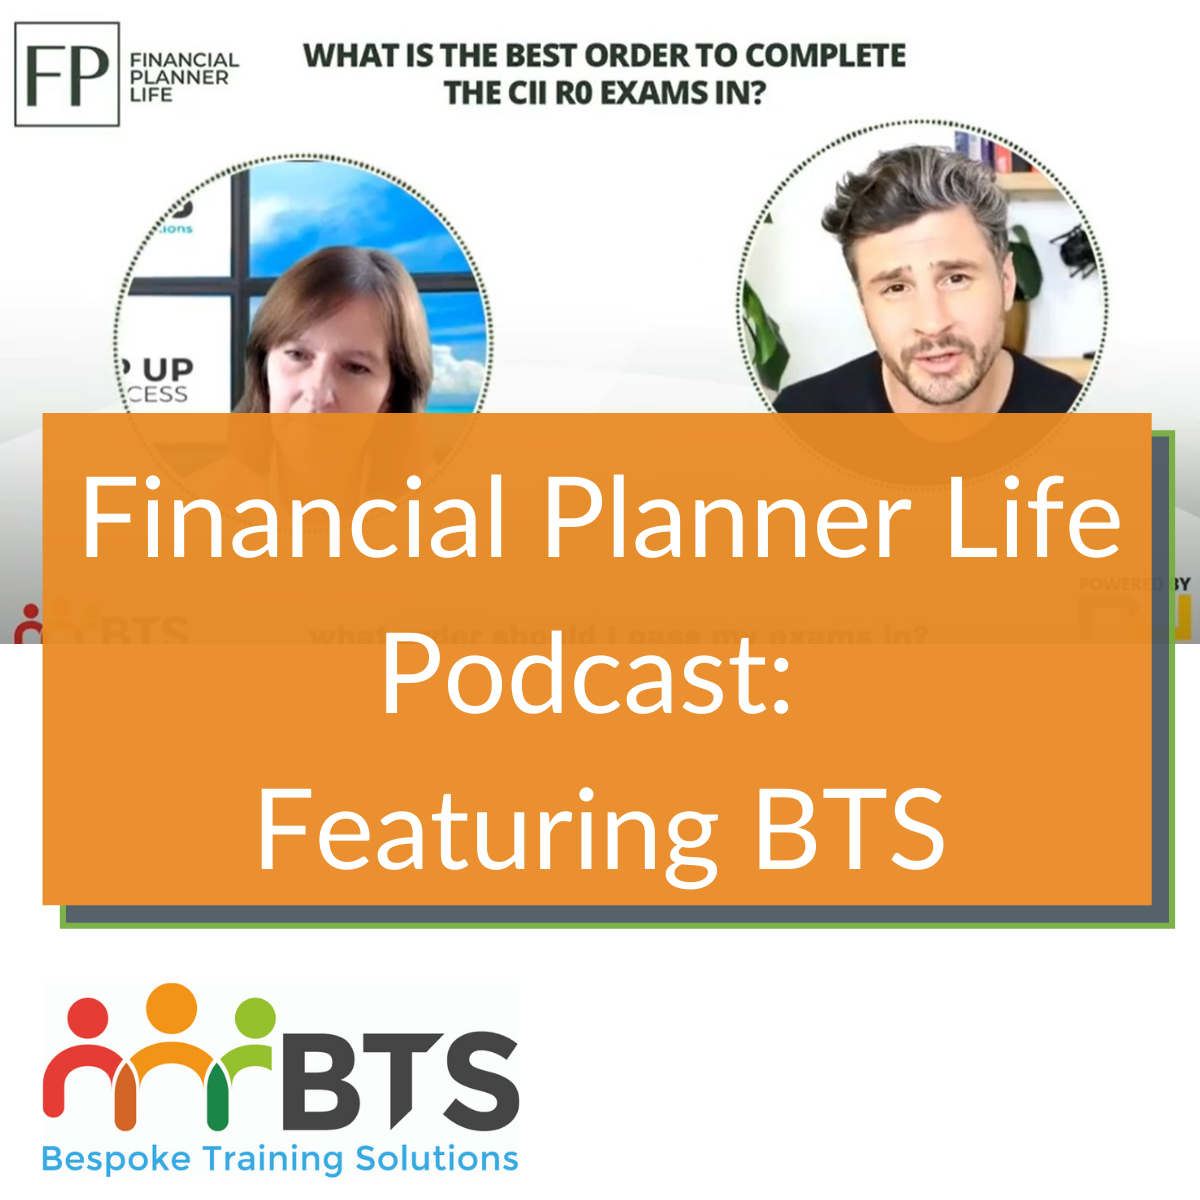 Financial Planner Life Podcast What is the best order to sit the CII Ro exam?